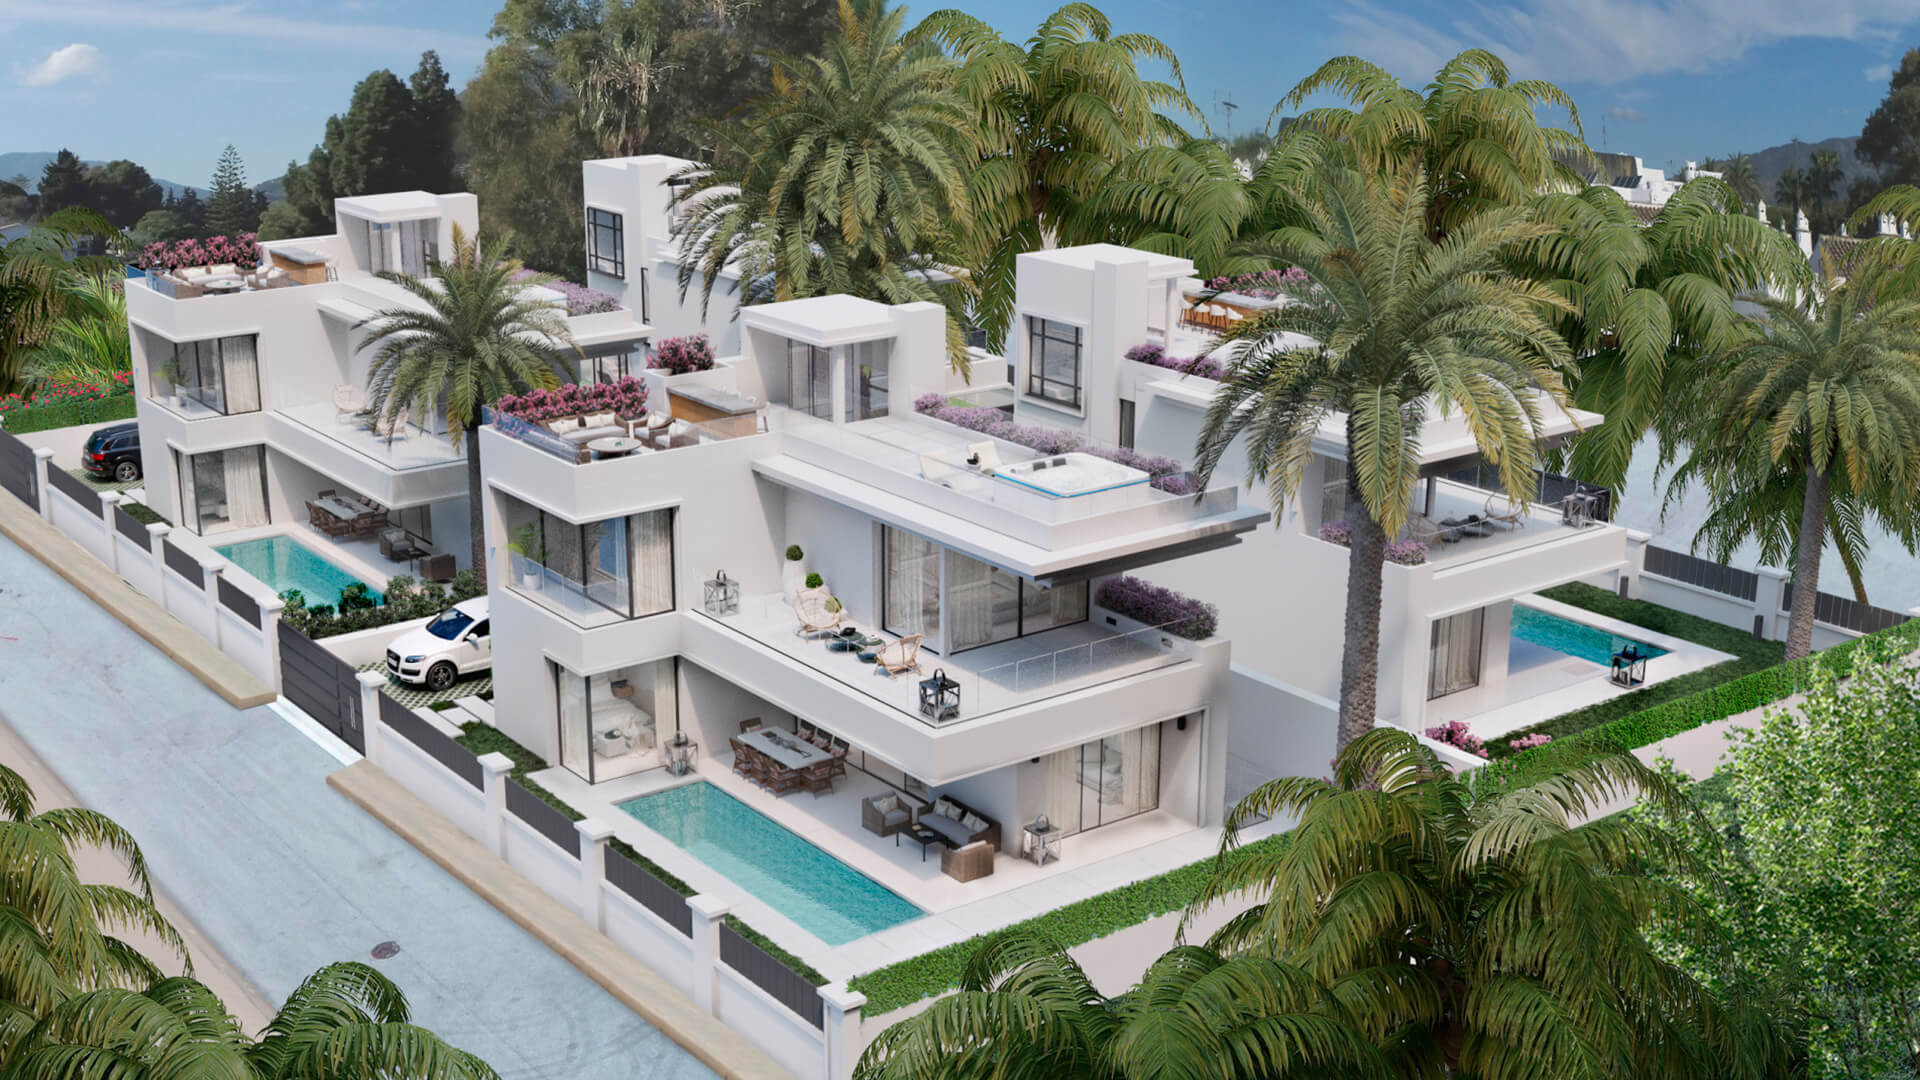 Villas Rio Verde - The Golden Mile